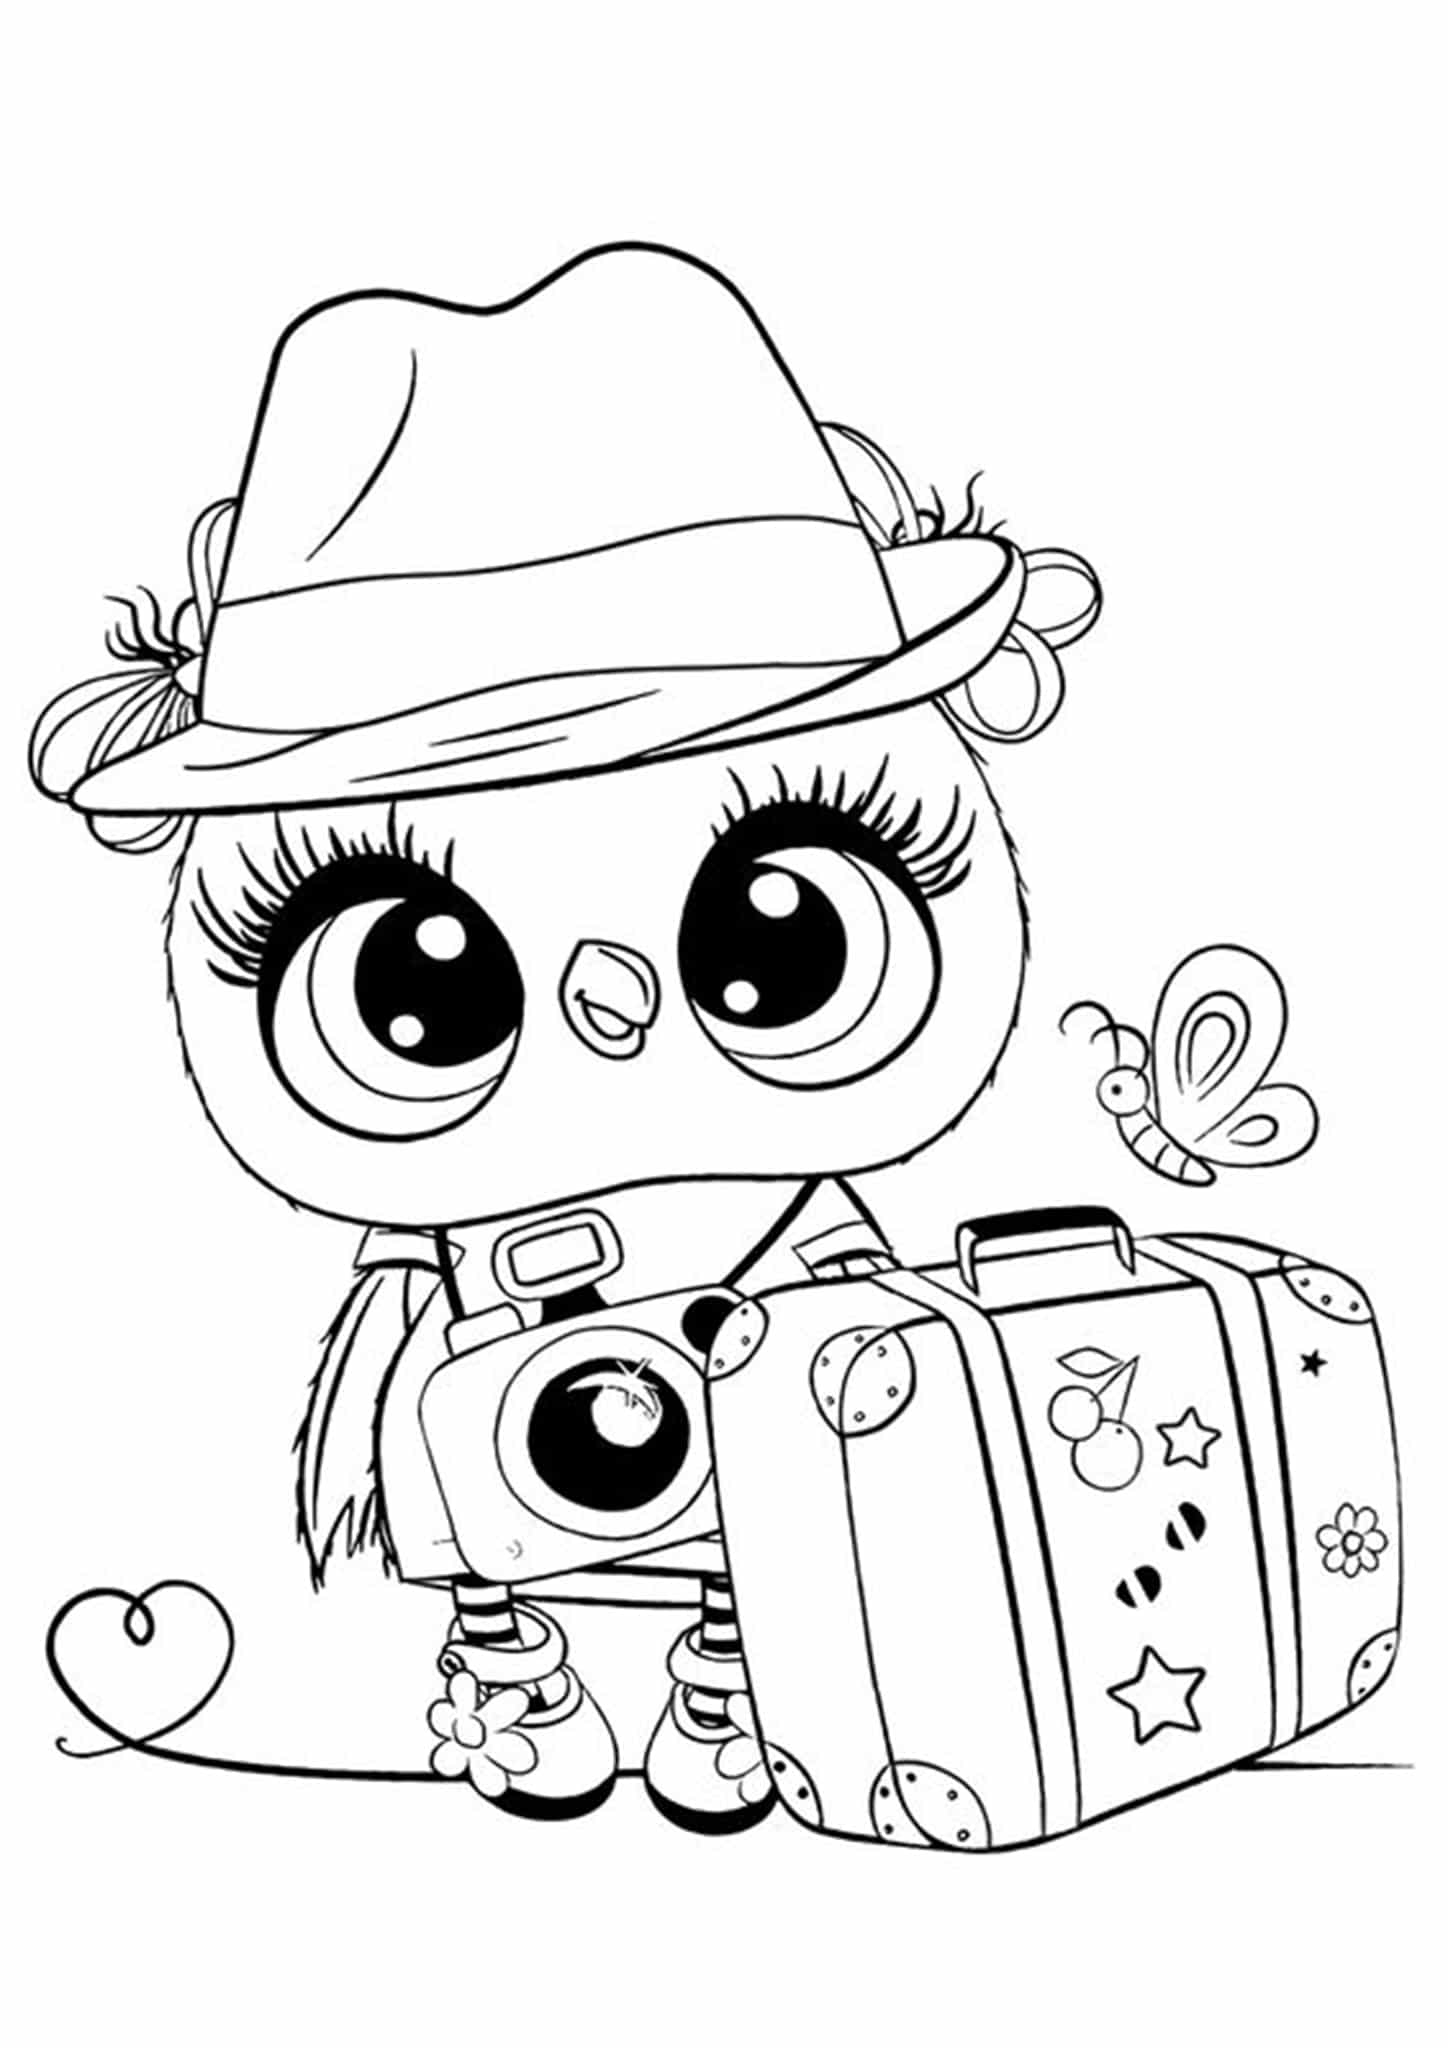 pictures for coloring adult coloring pages animals best coloring pages for kids pictures coloring for